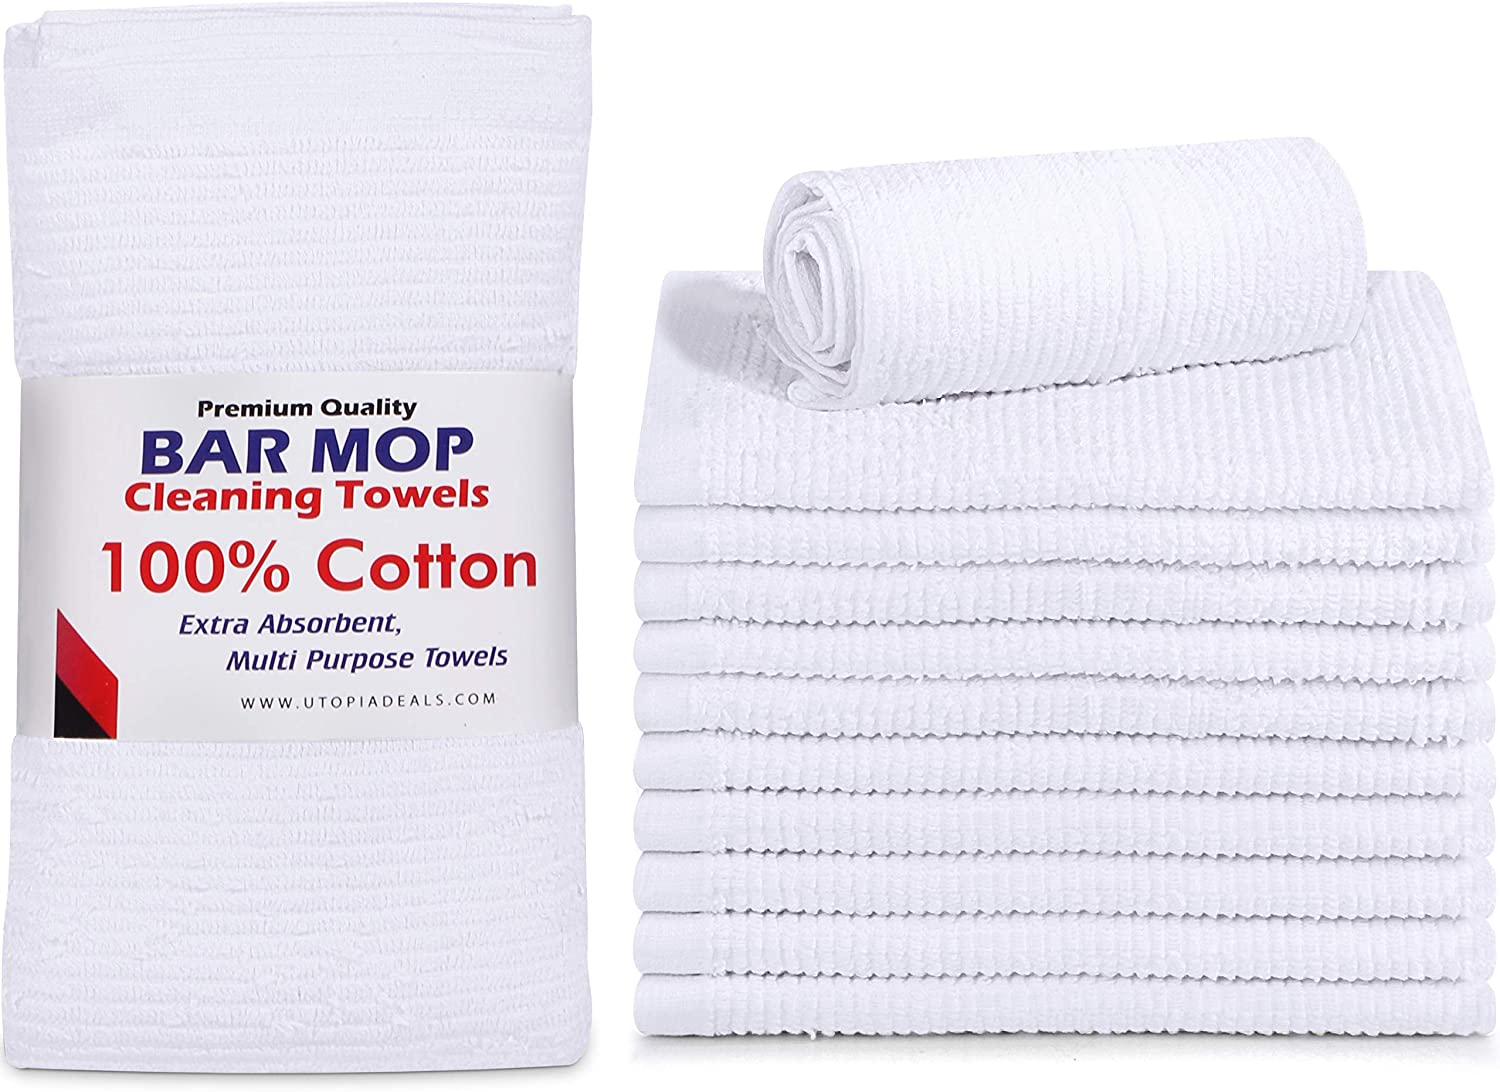 Utopia Towels Ribbed Bar Mop Towels,16 x 19 Inches, 100% Cotton Super Absorbent White Bar Towels, Multi-Purpose Cleaning Towels for Home and Kitchen Bars, (Pack of 12)